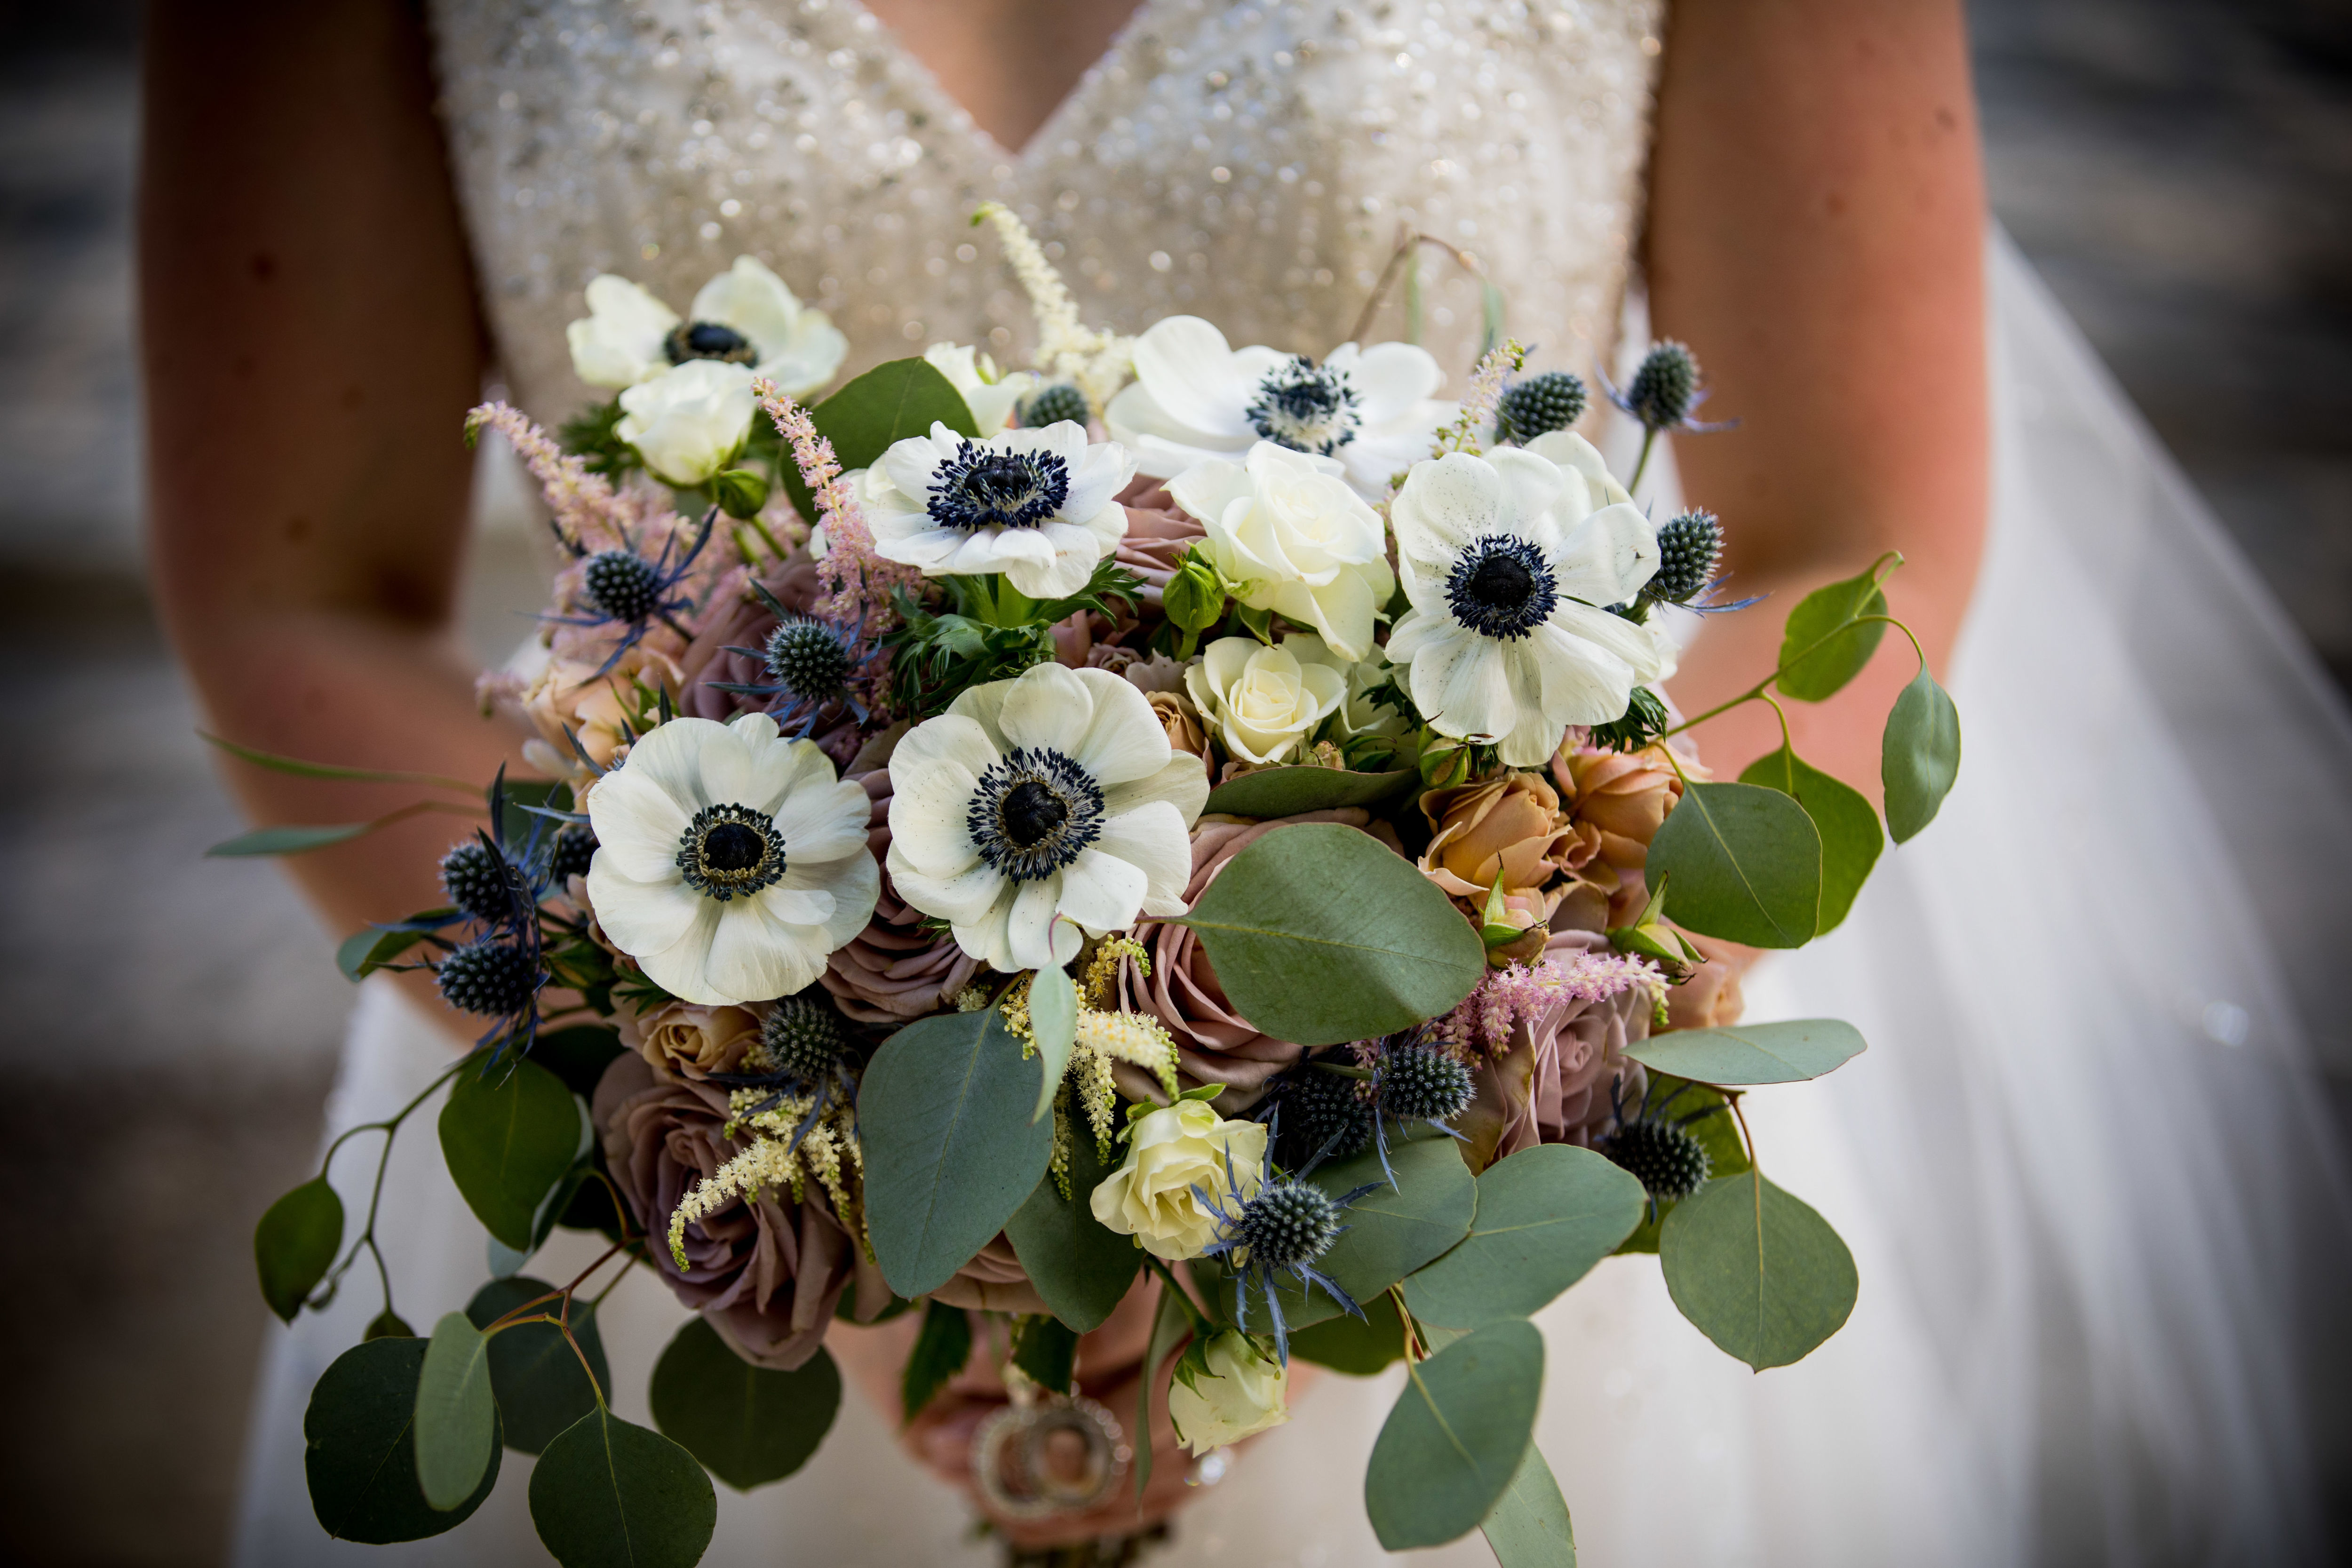 Preserve your wedding bouquet as a watercolor or acrylic painting.